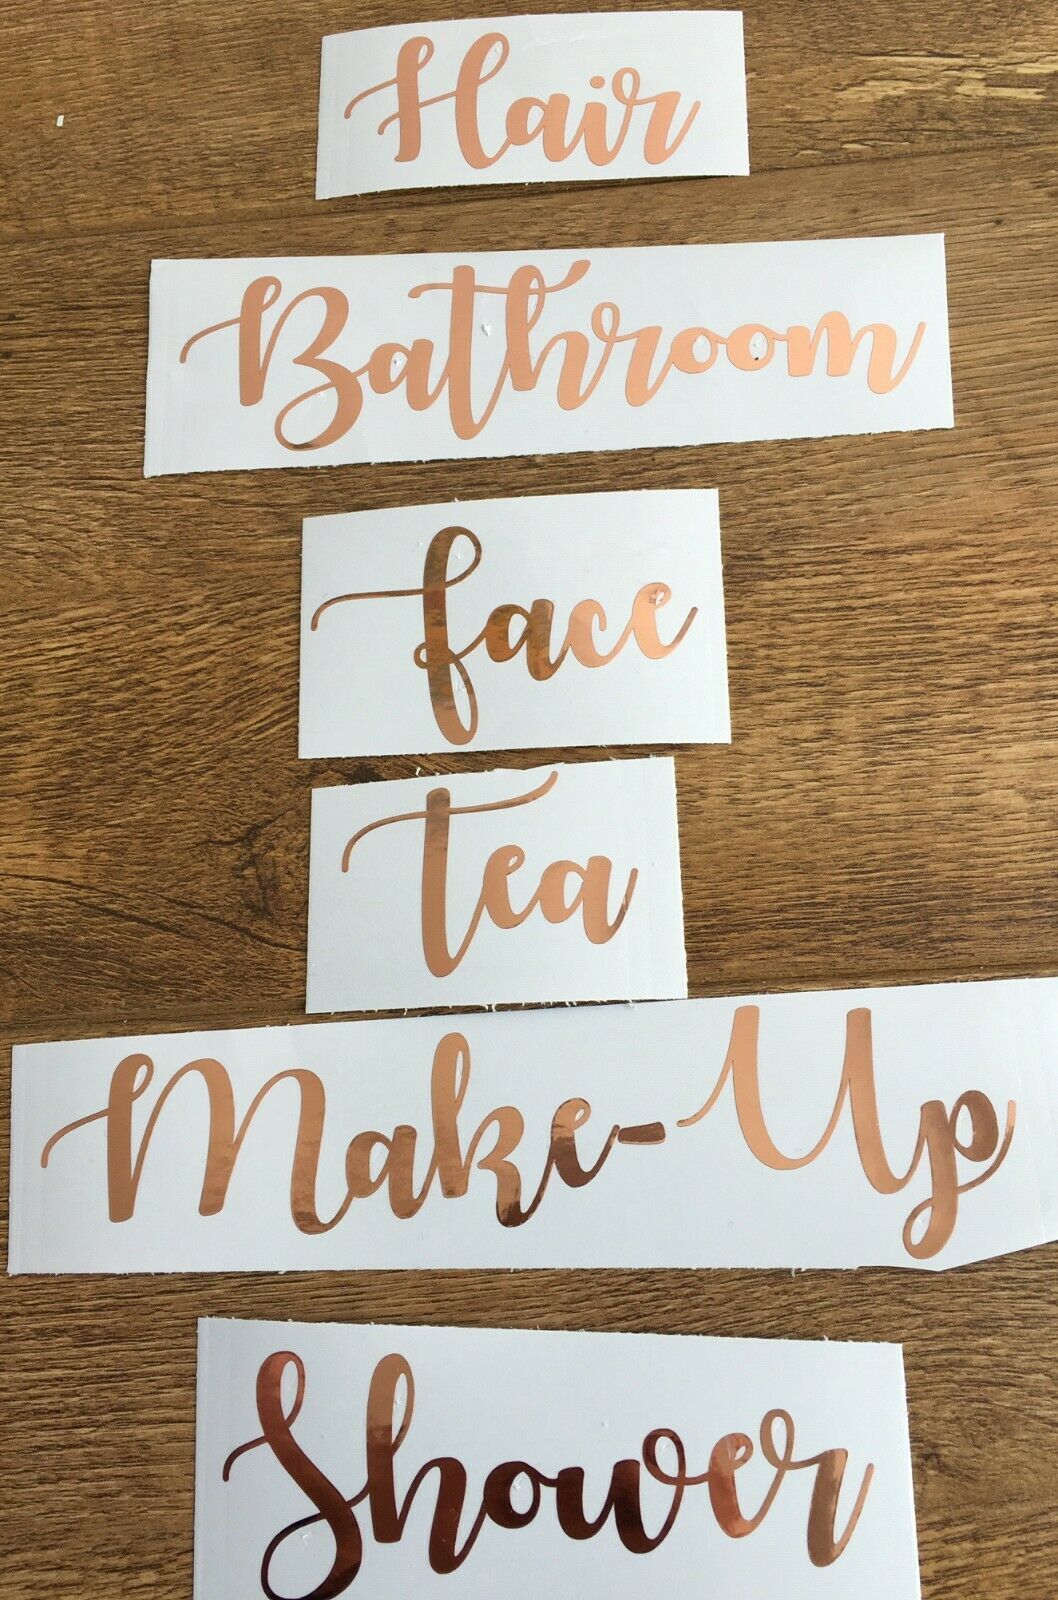 Rose Gold Vinyl Stickers, Chrome, Shiny Labels, Decals Storage, House, Mrs Hinch 3